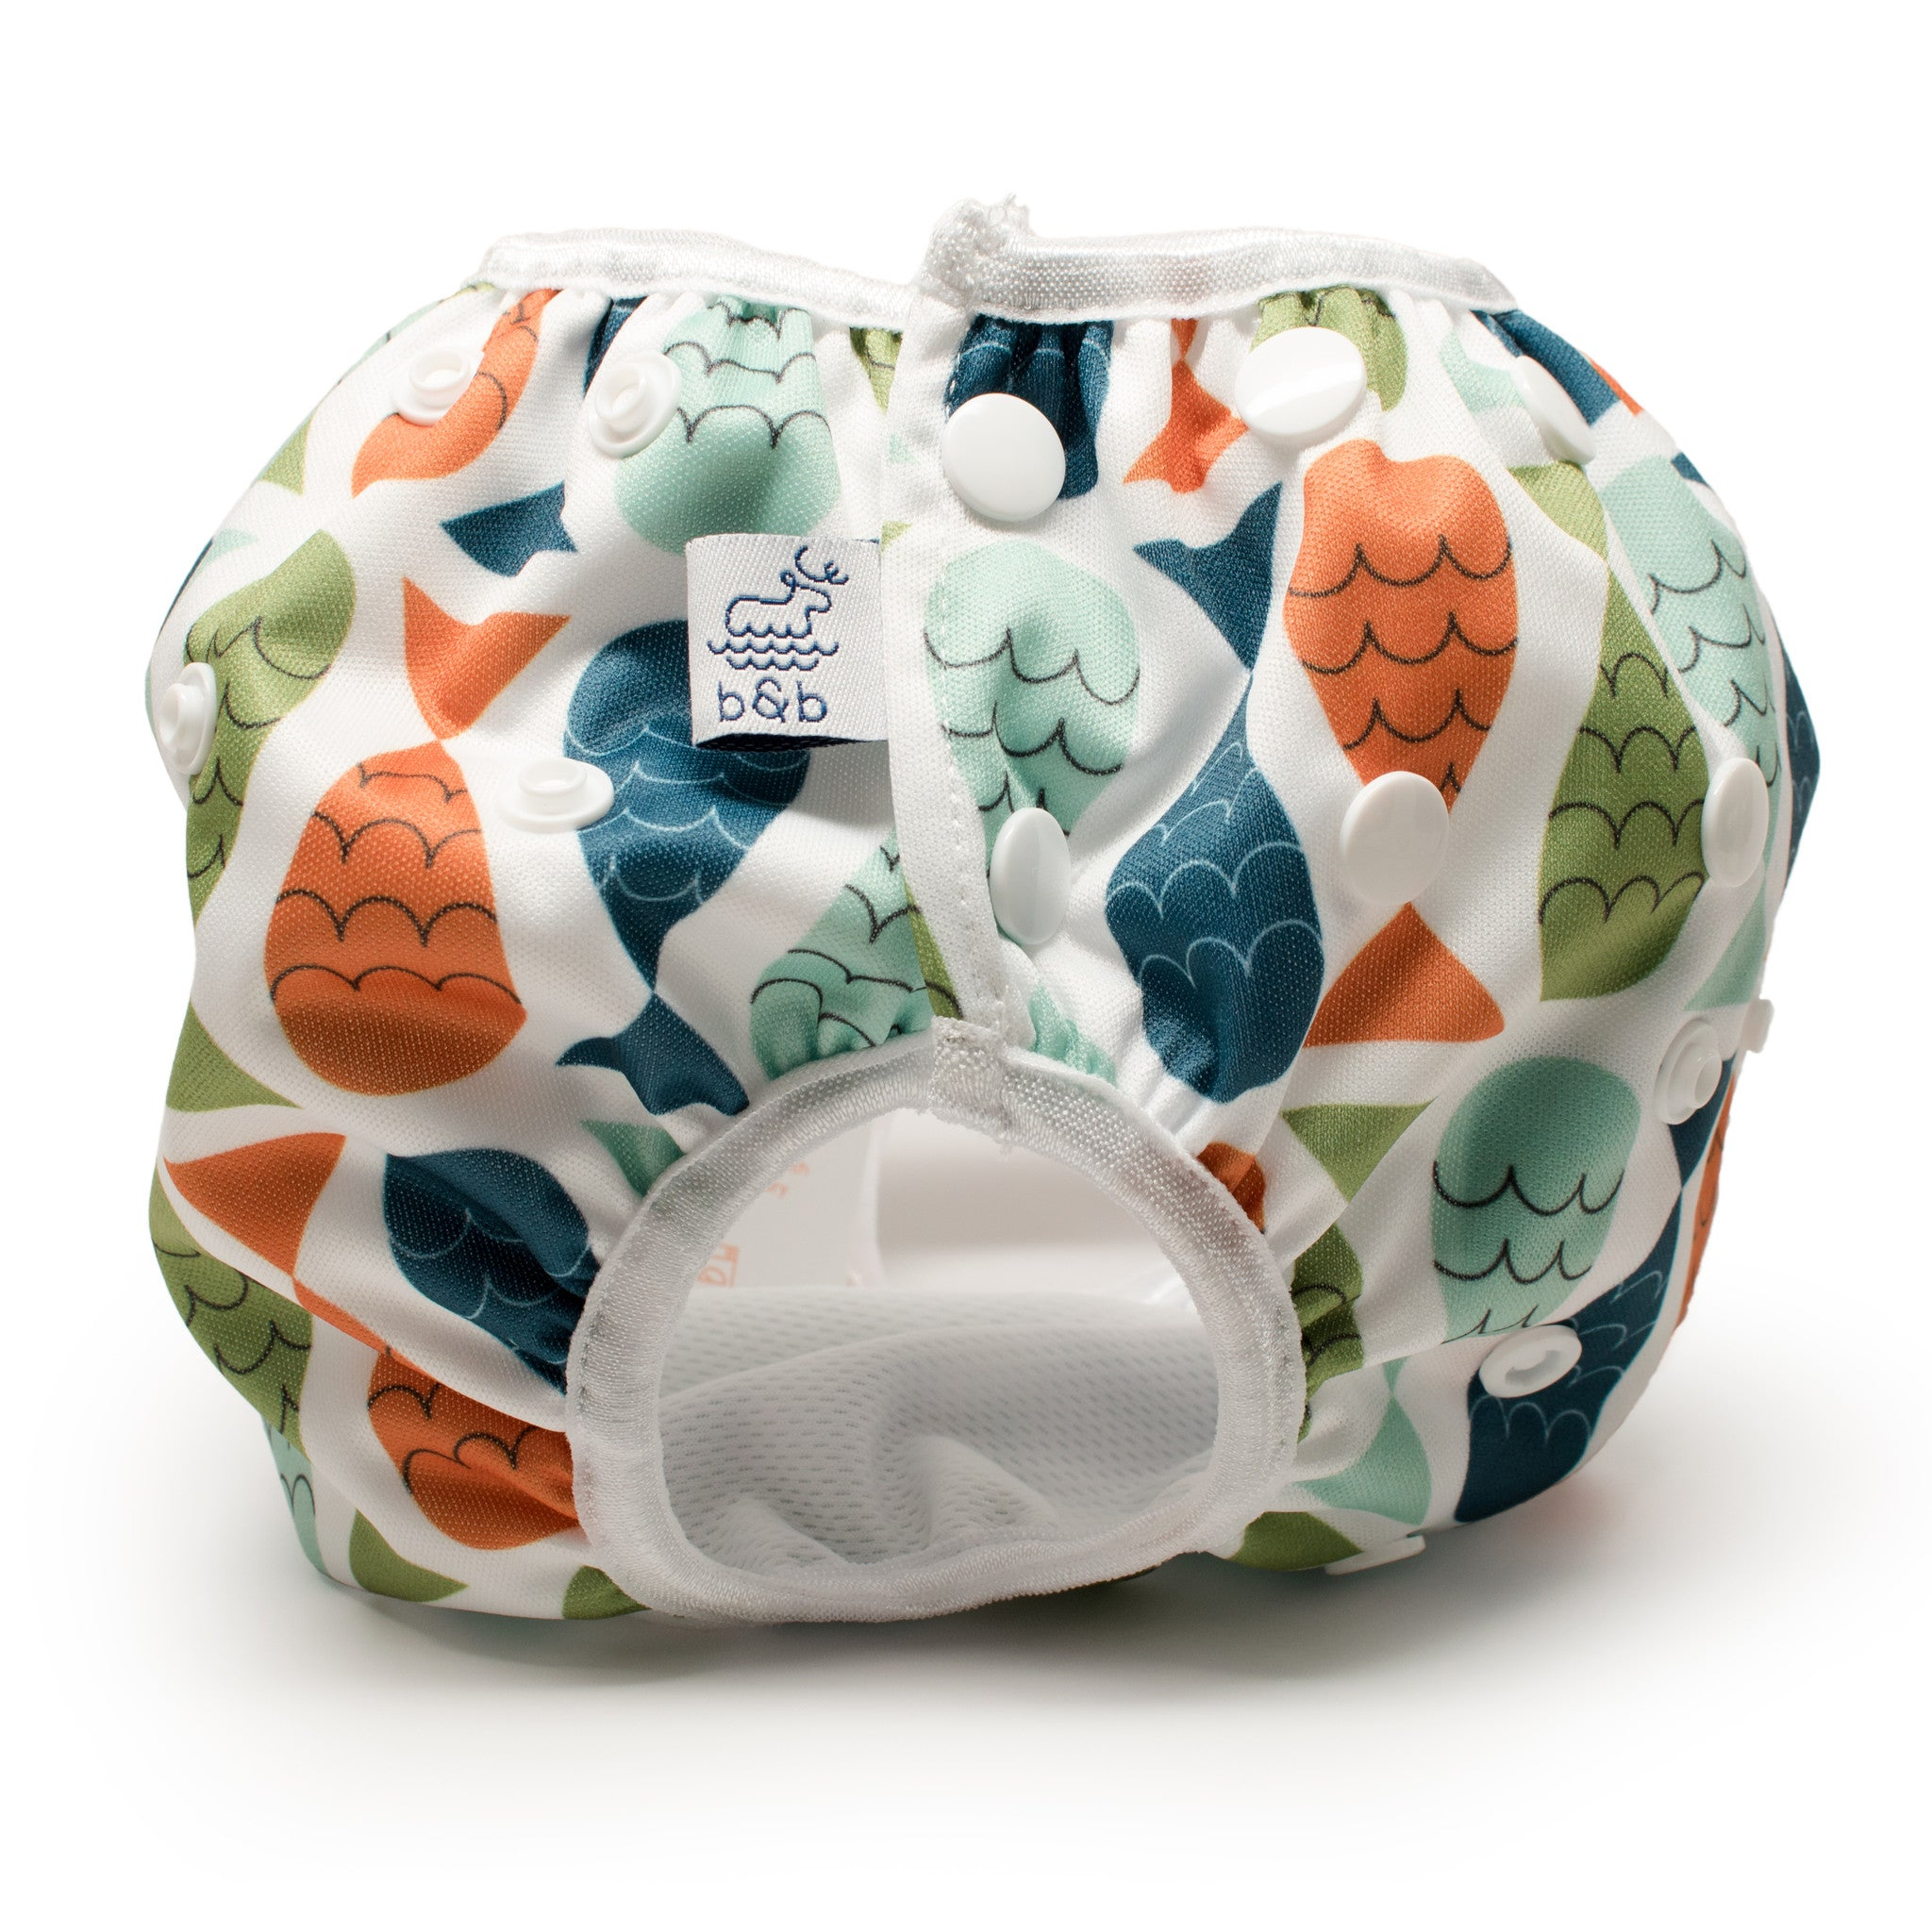 Beau and Belle Littles Swim Diaper, Regular Size, fish print, side view